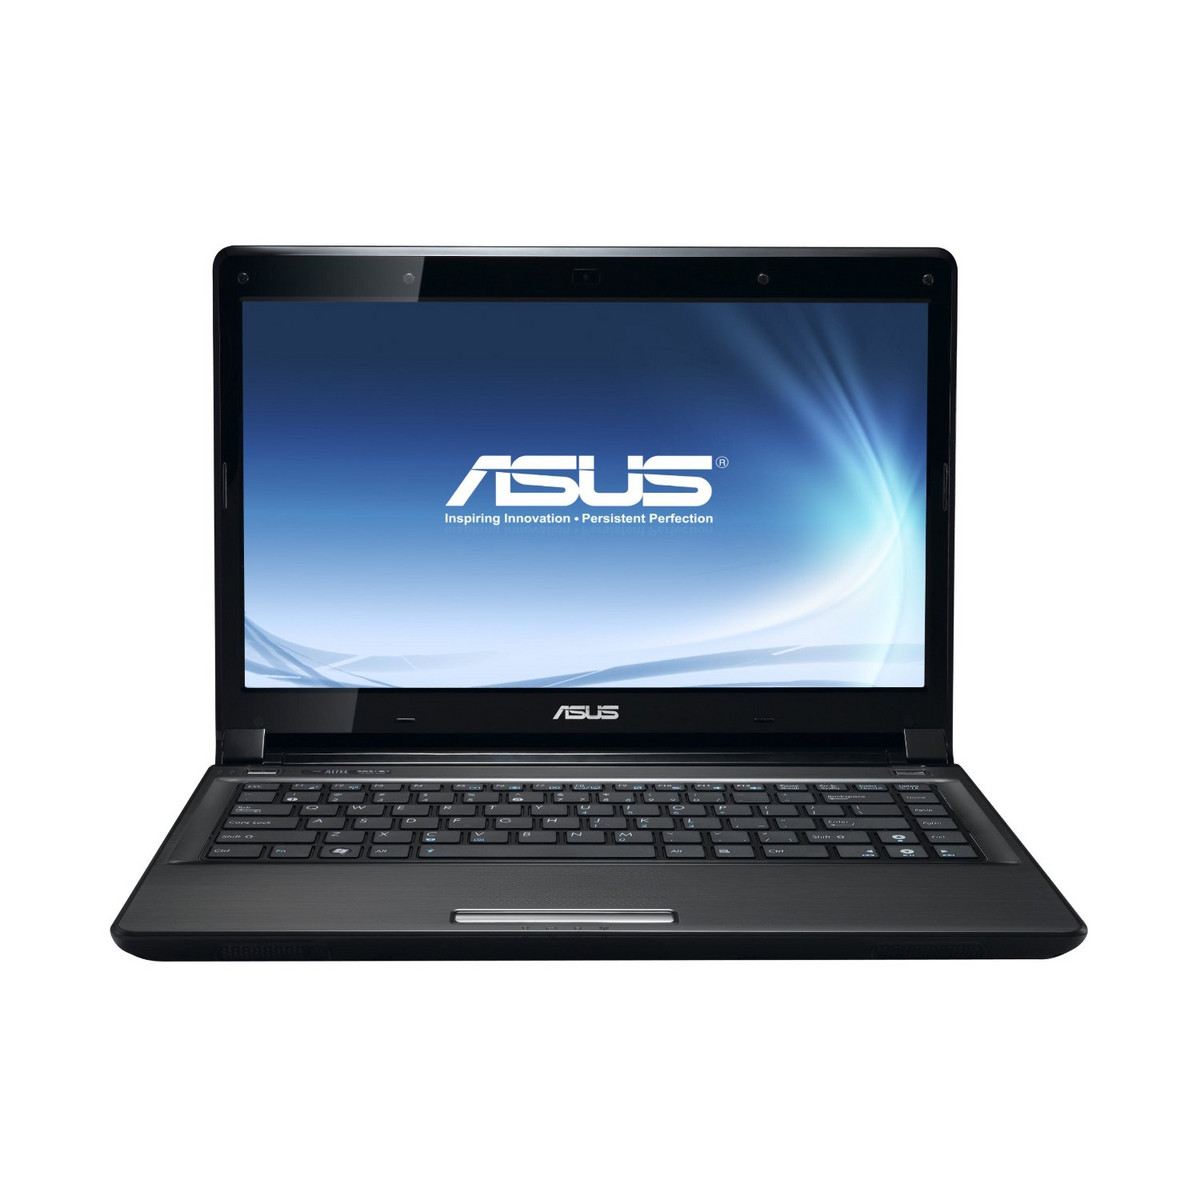 Asus U45JC Notebook Intel Turbo Boost Monitor Treiber Windows 7